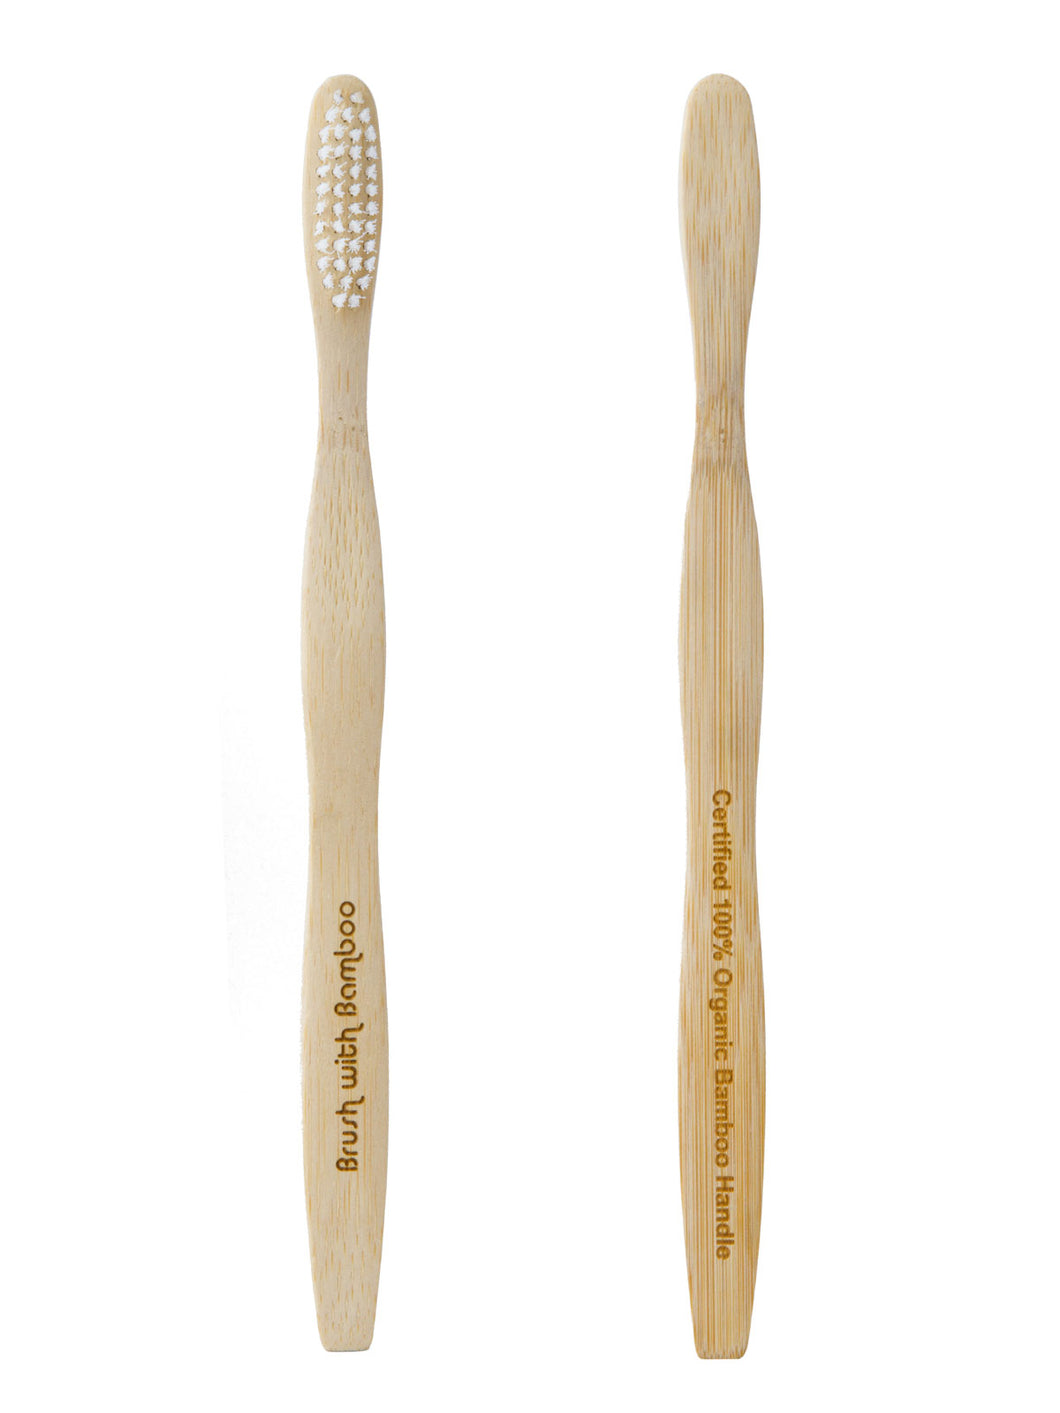 Adult Plant Based Bamboo Toothbrush | Well Earth Goods